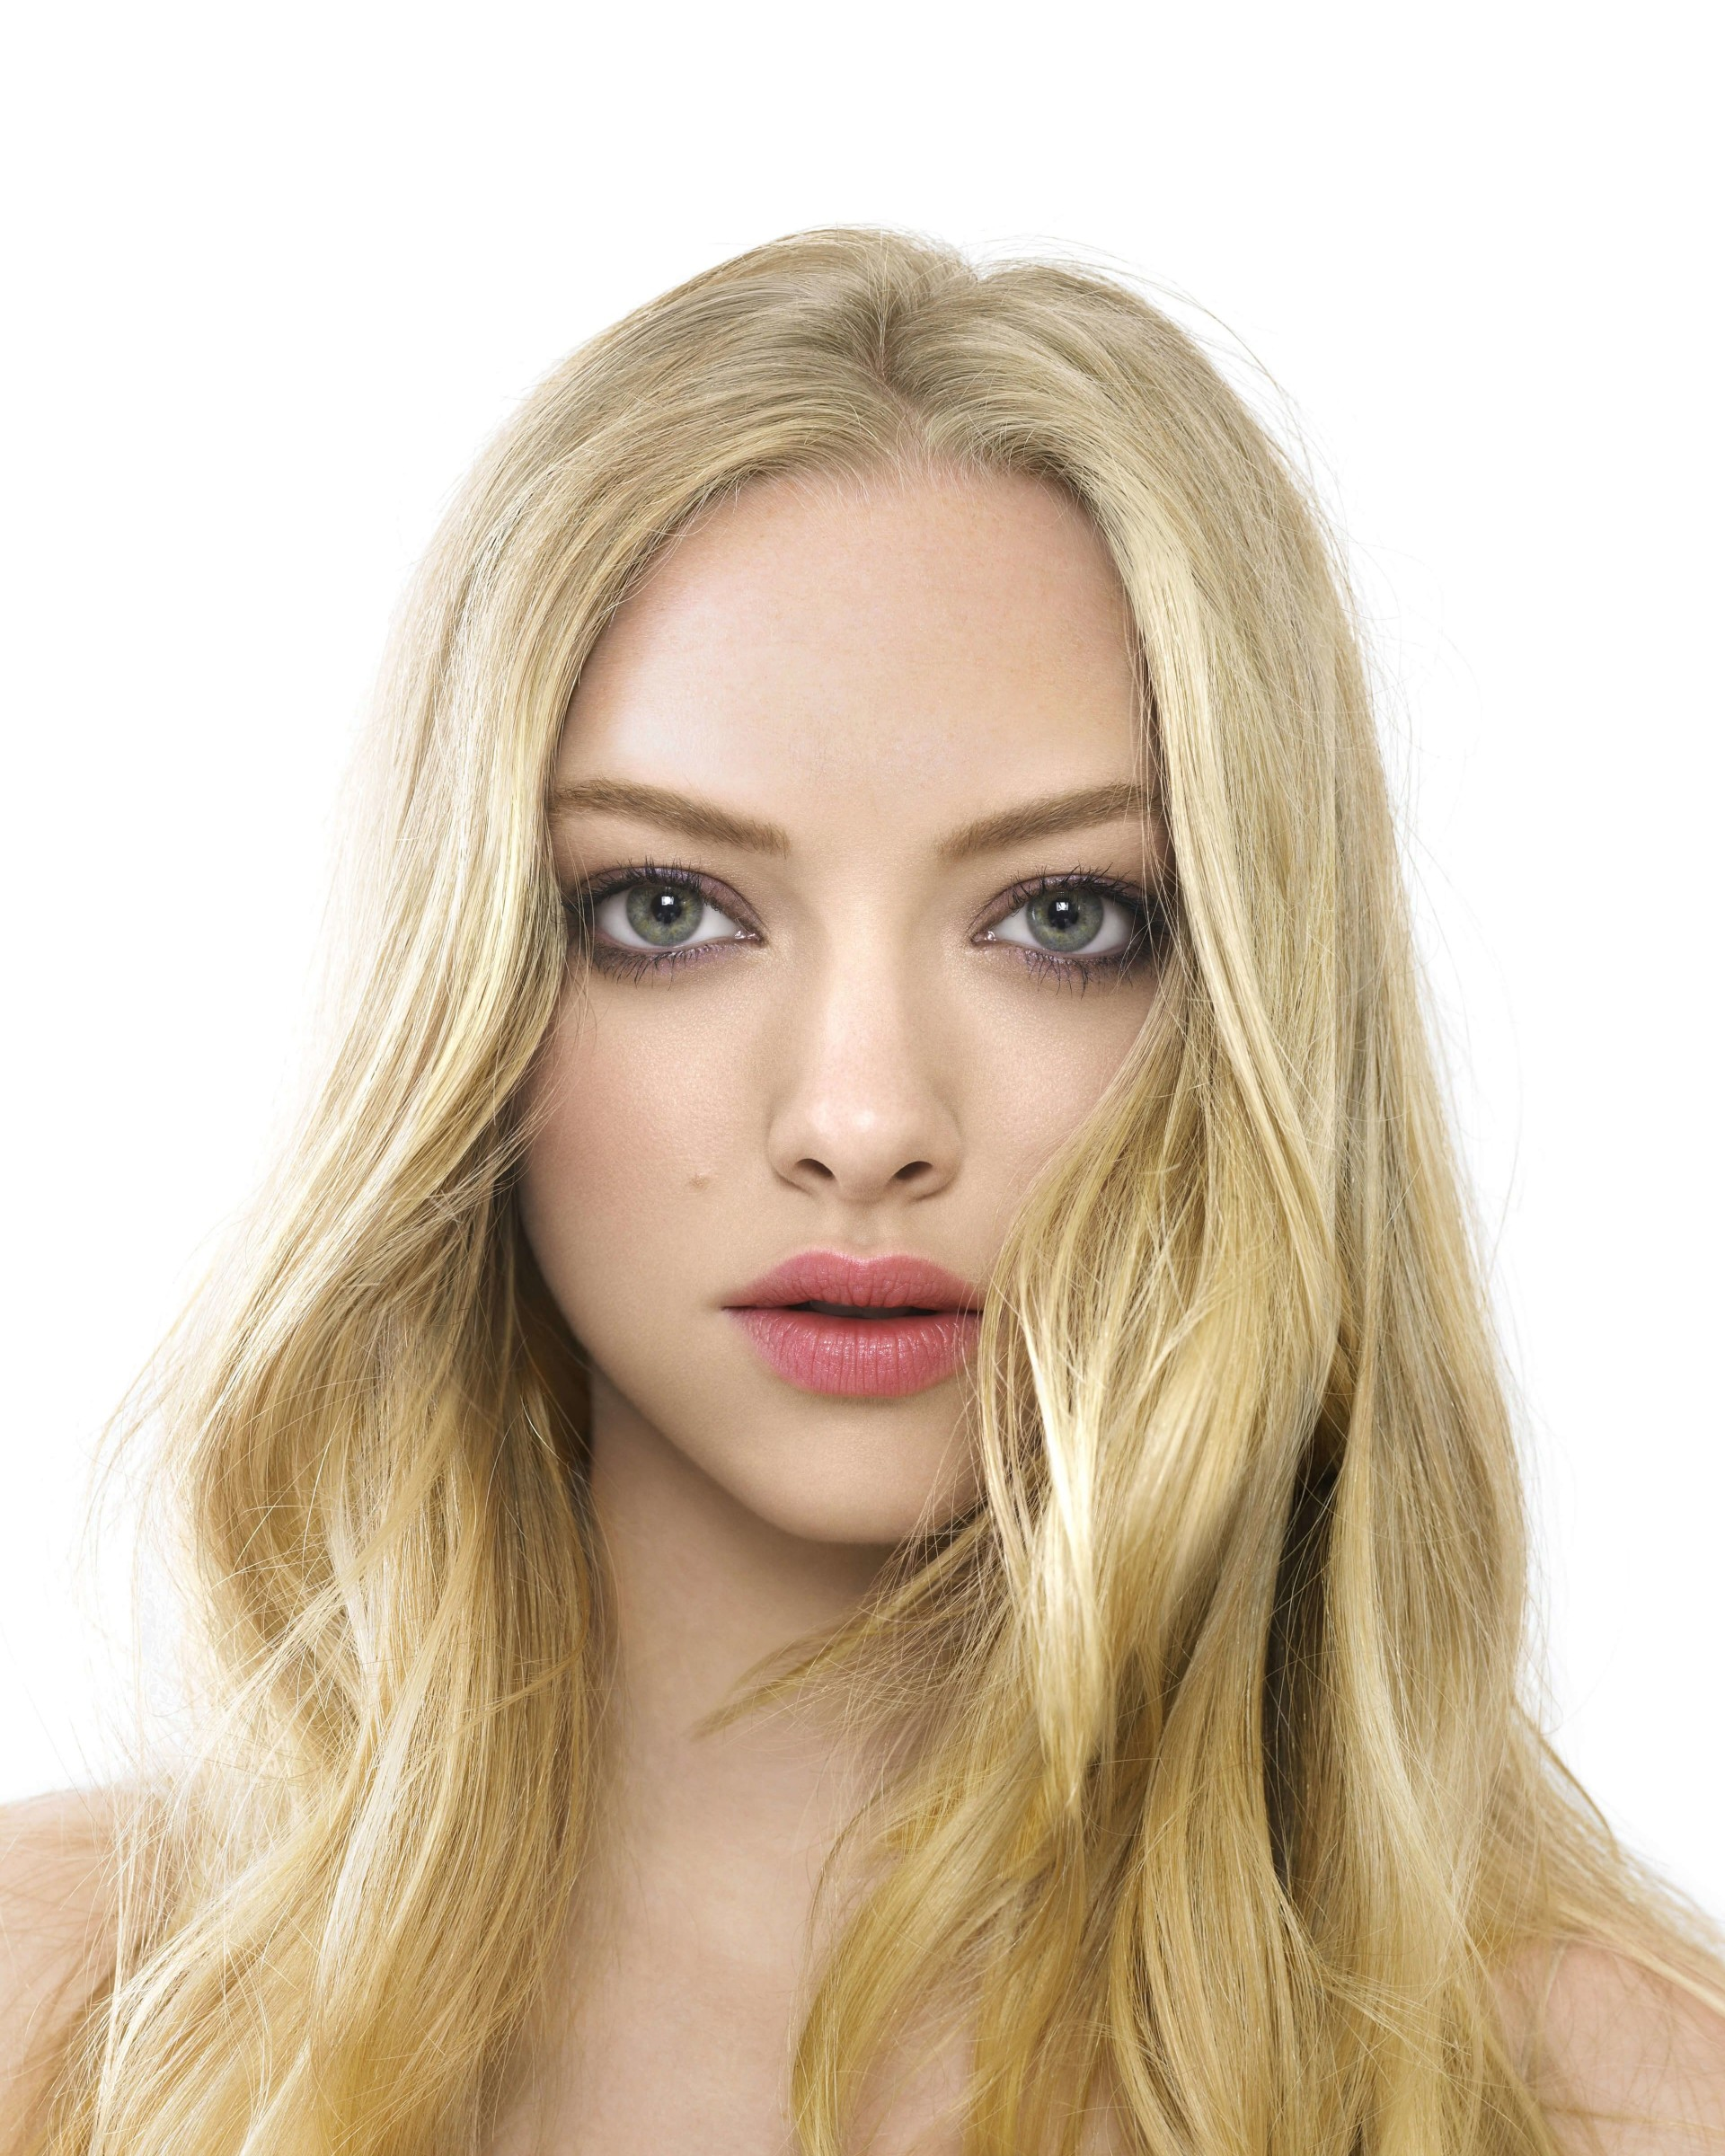 Amanda Seyfried Portrait Wallpaper for Google Nexus 7